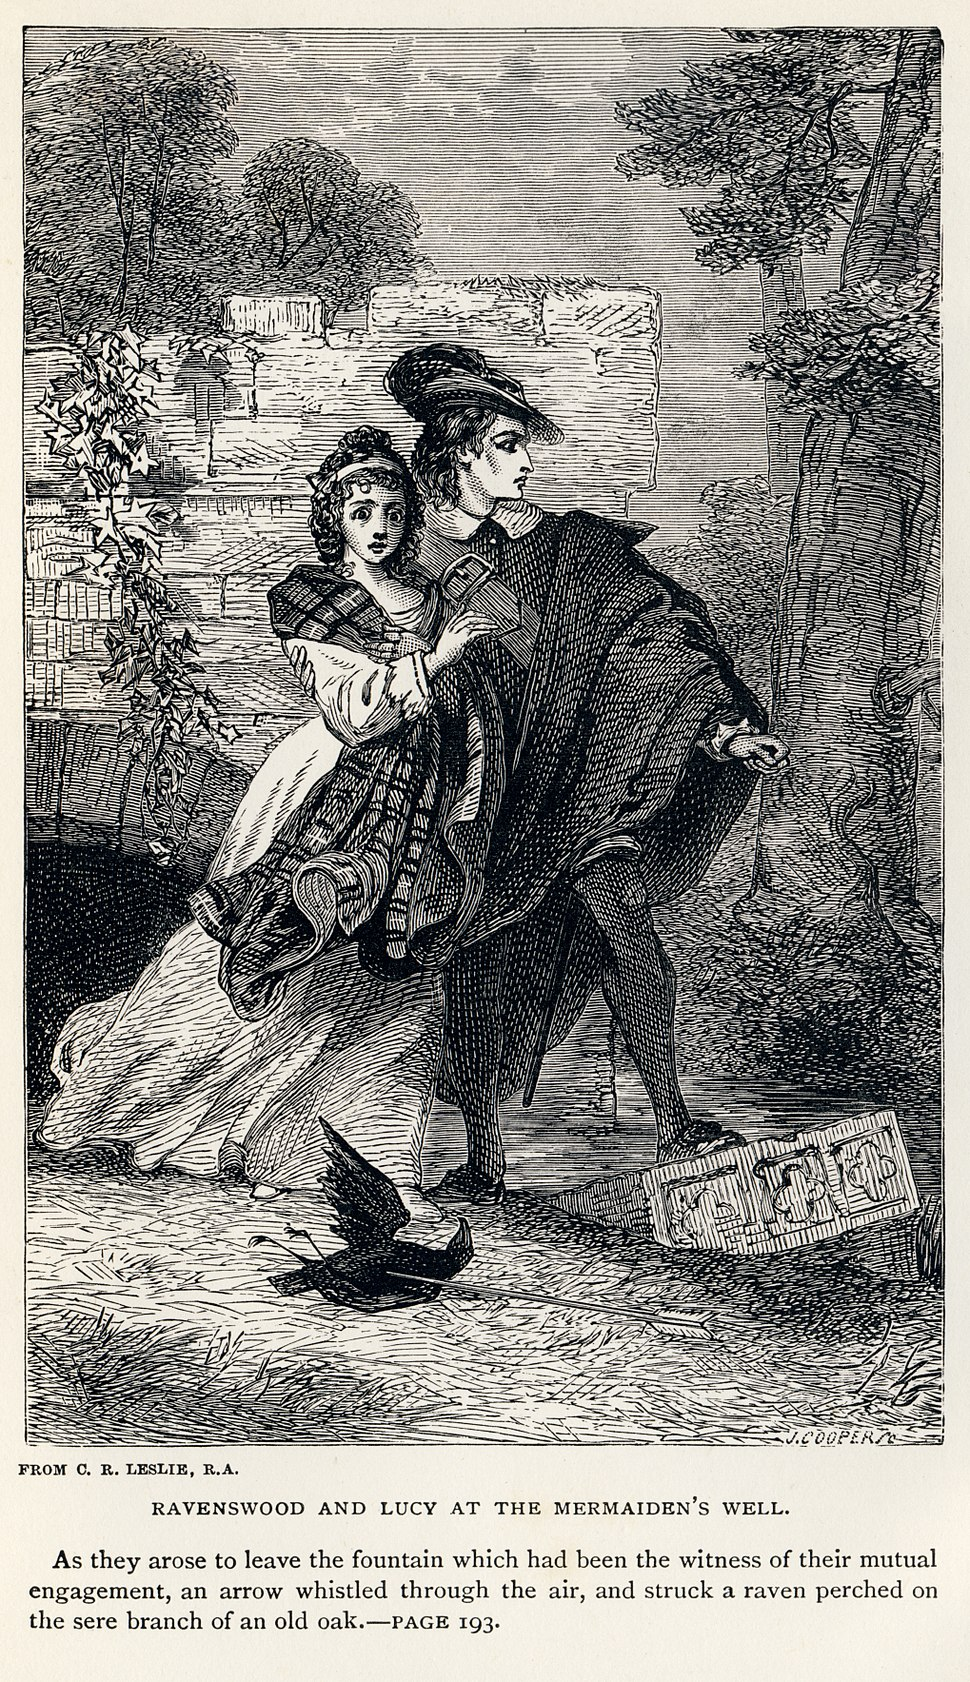 Charles Robert Leslie - Sir Walter Scott - Ravenswood and Lucy at the Mermaiden's Well - Bride of Lammermoor